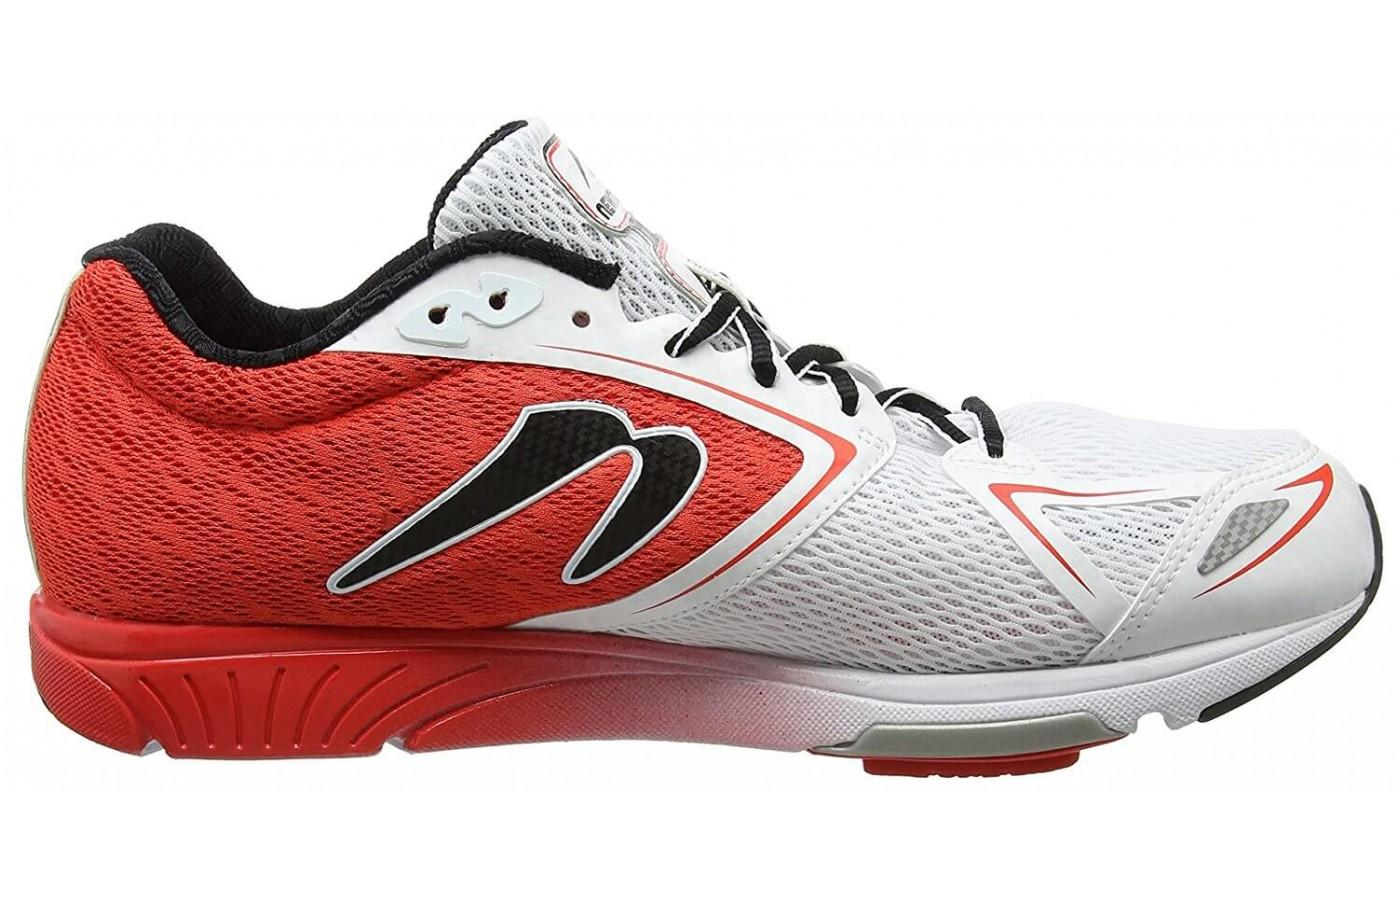 ... The Newton Distance 6 has a full flex zone for comfortable splaying ...